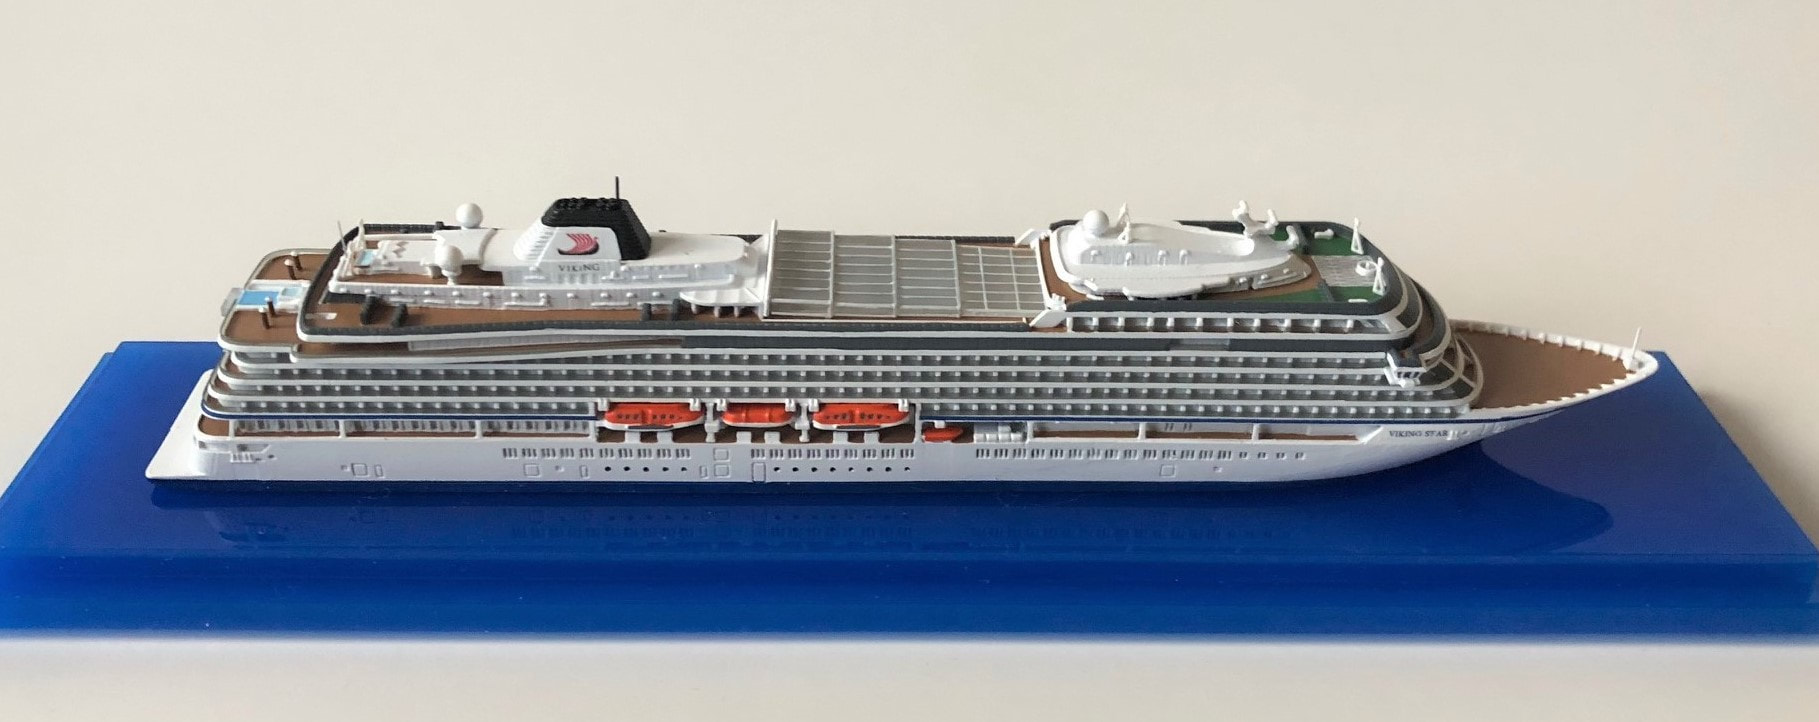 Viking Star cruise ship model. Viking Ocean Cruises Picture